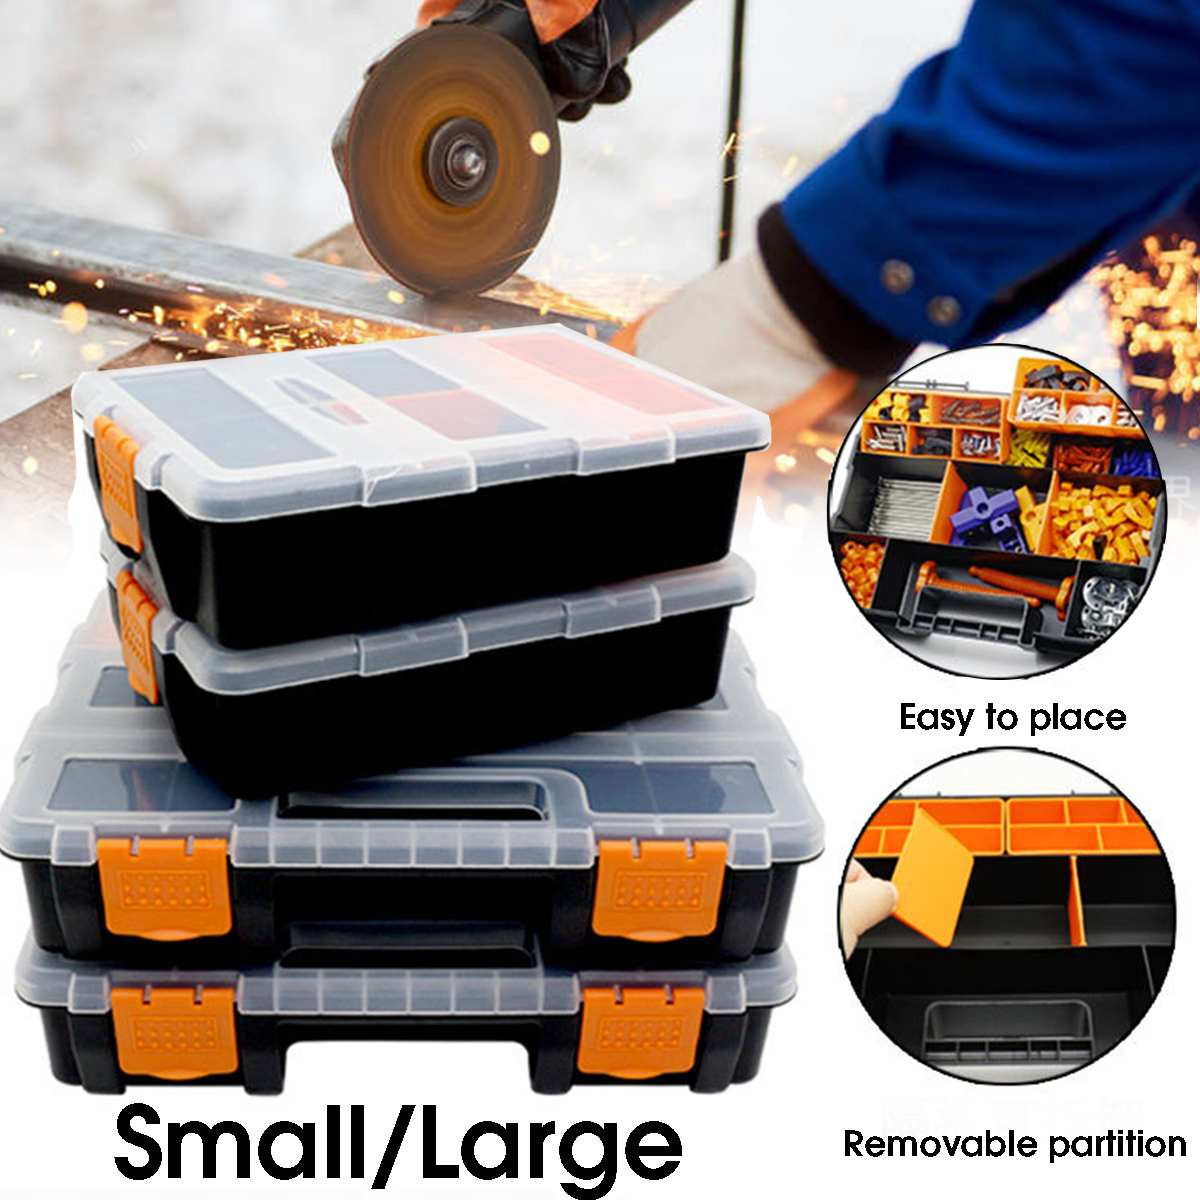 Tool Case Components Box Plastic Parts Combined Transparent Drill Screw Containers Storage Case Hardware Accessories Tool Box